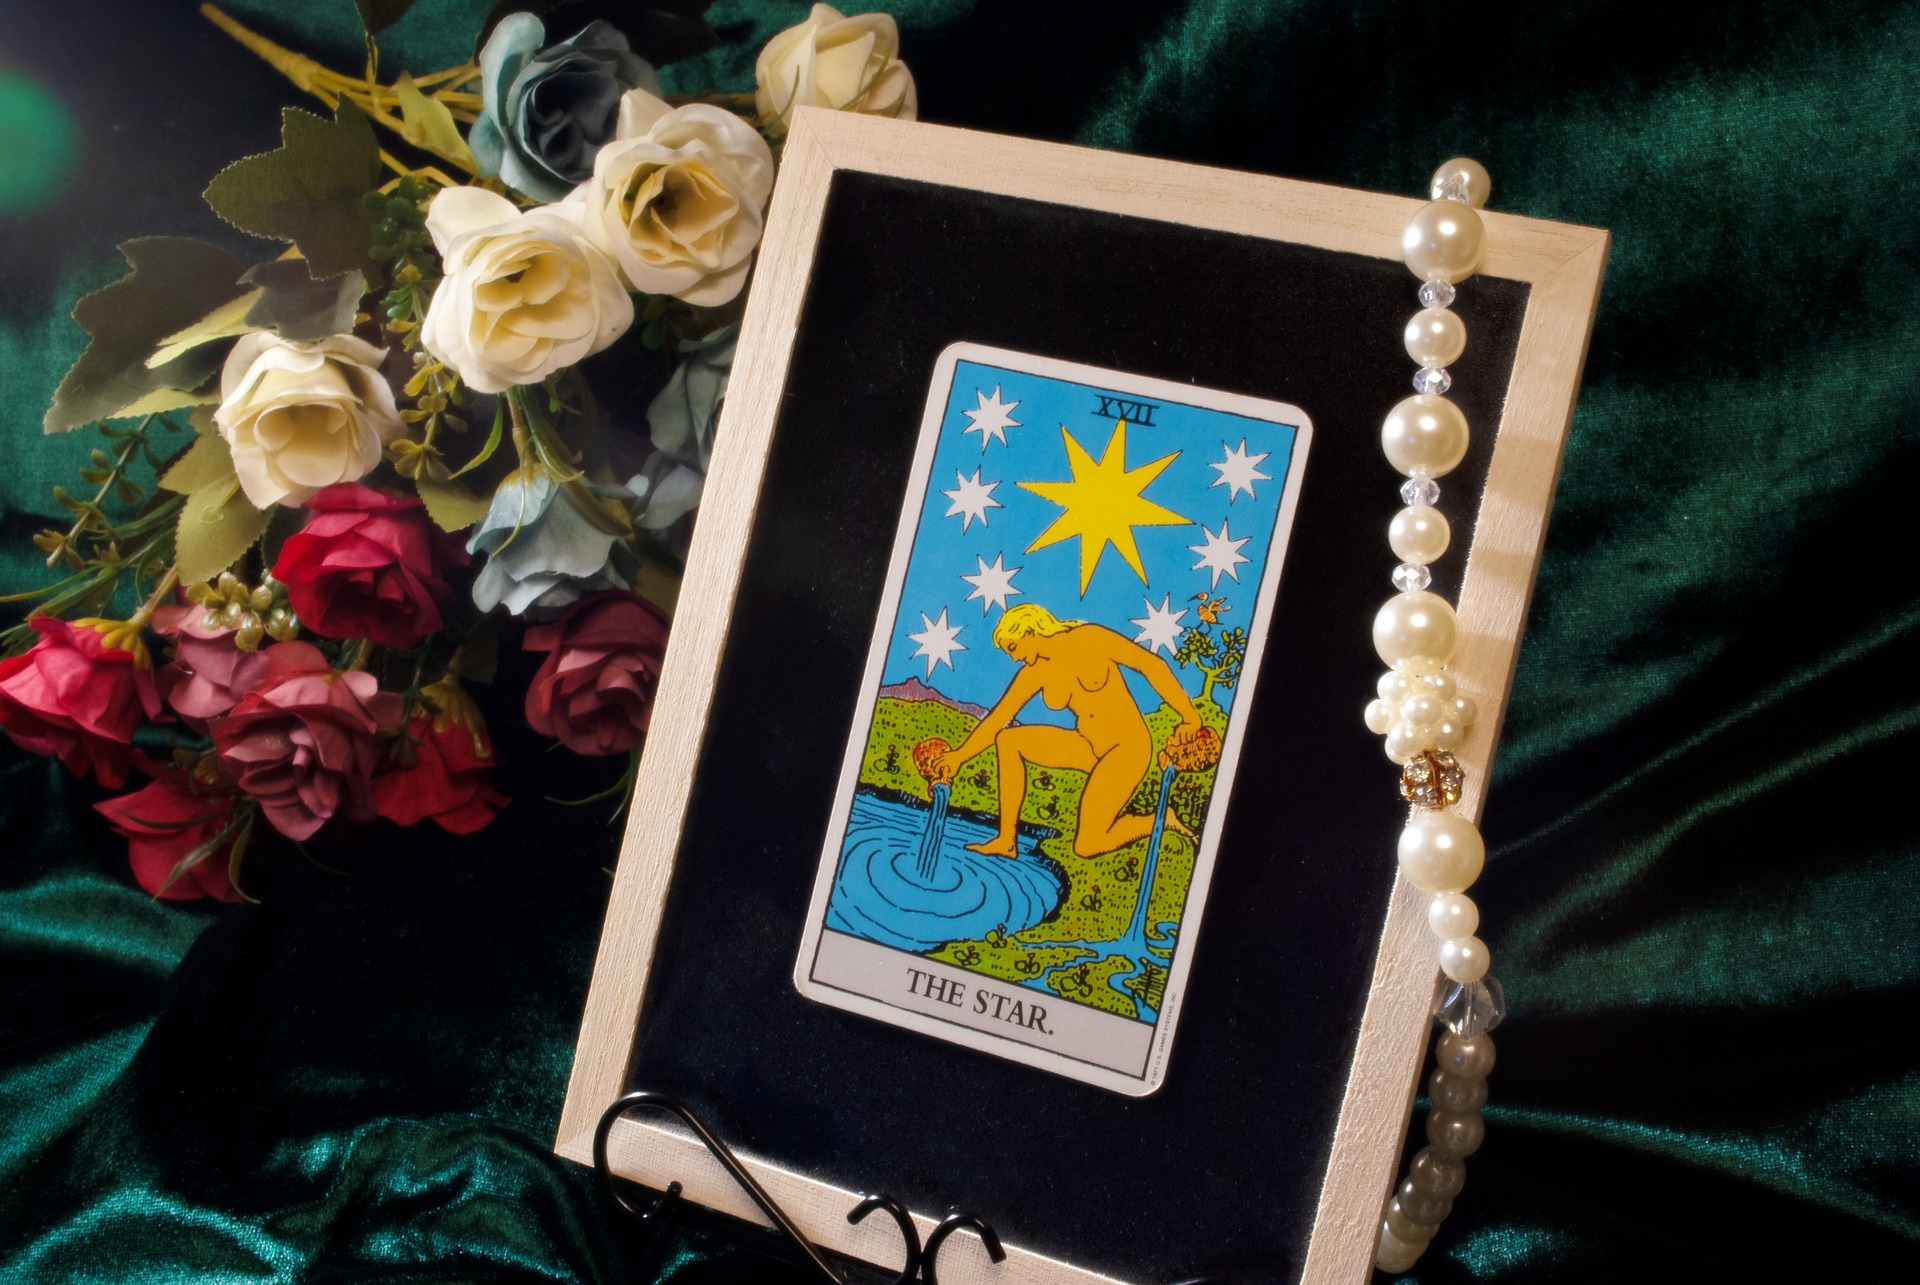 The star tarot card